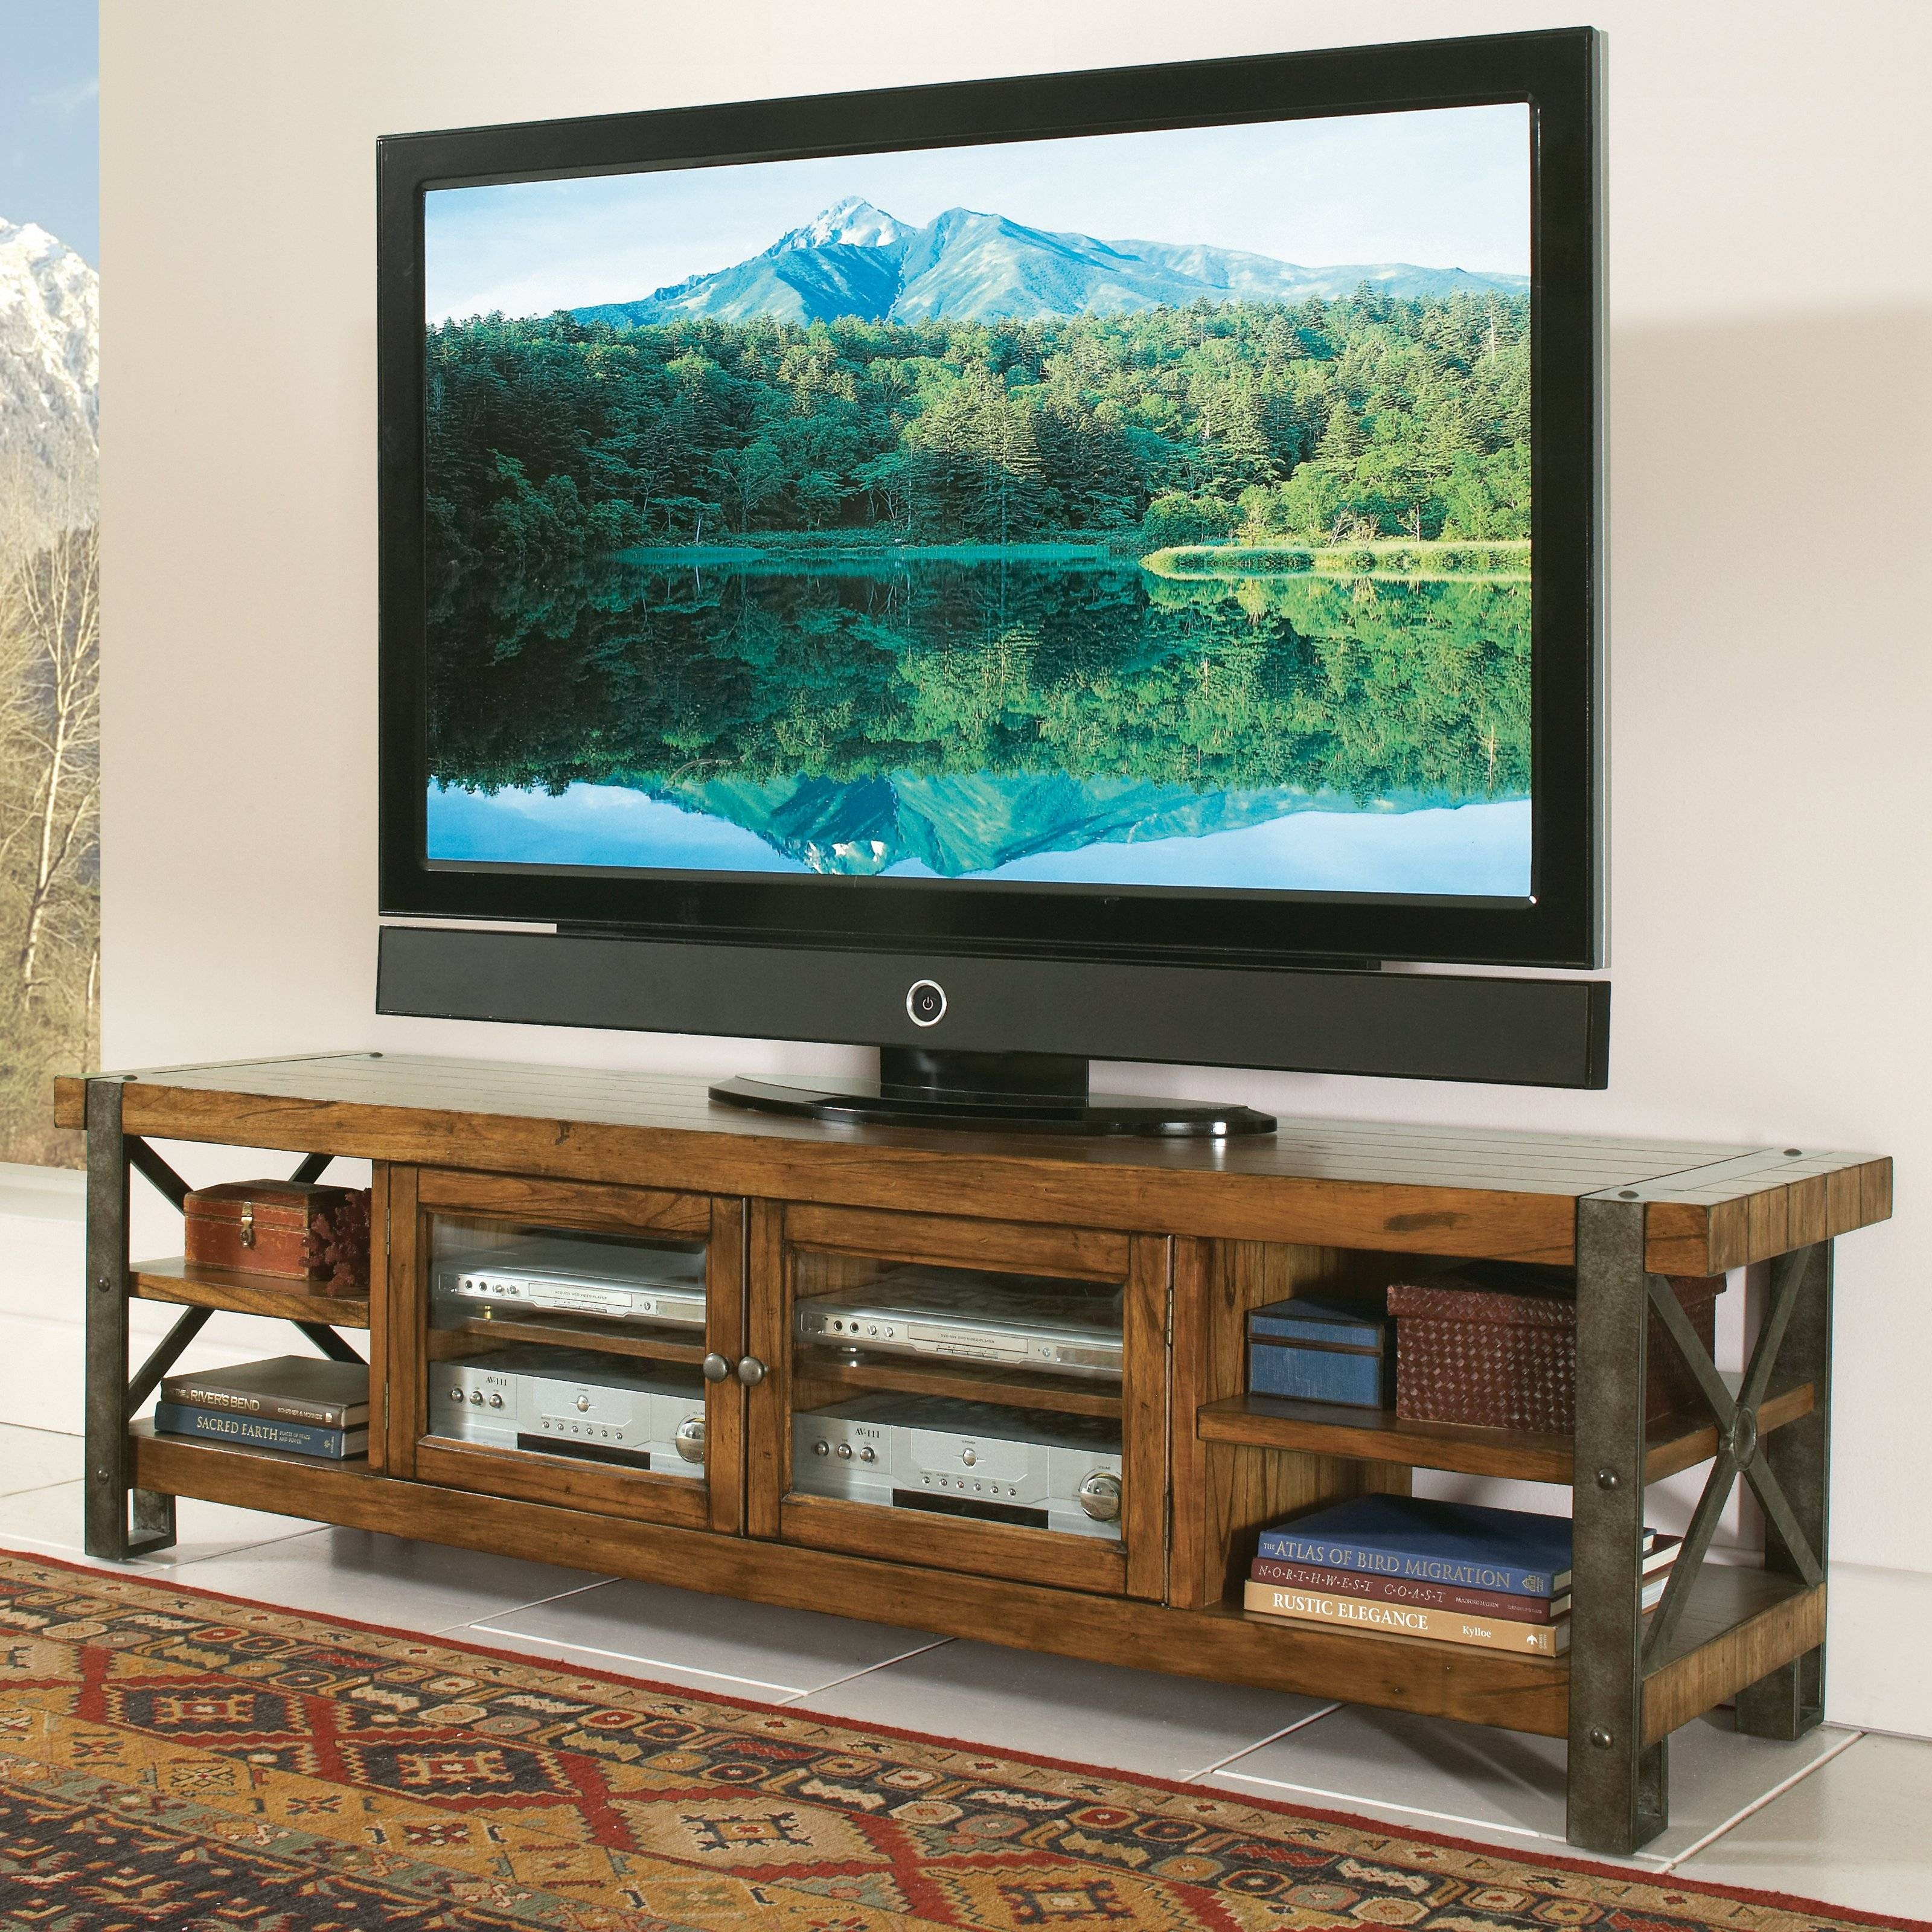 Distressed & Industrial Style Tv Stands | Hayneedle Inside Rustic 60 Inch Tv Stands (View 4 of 15)